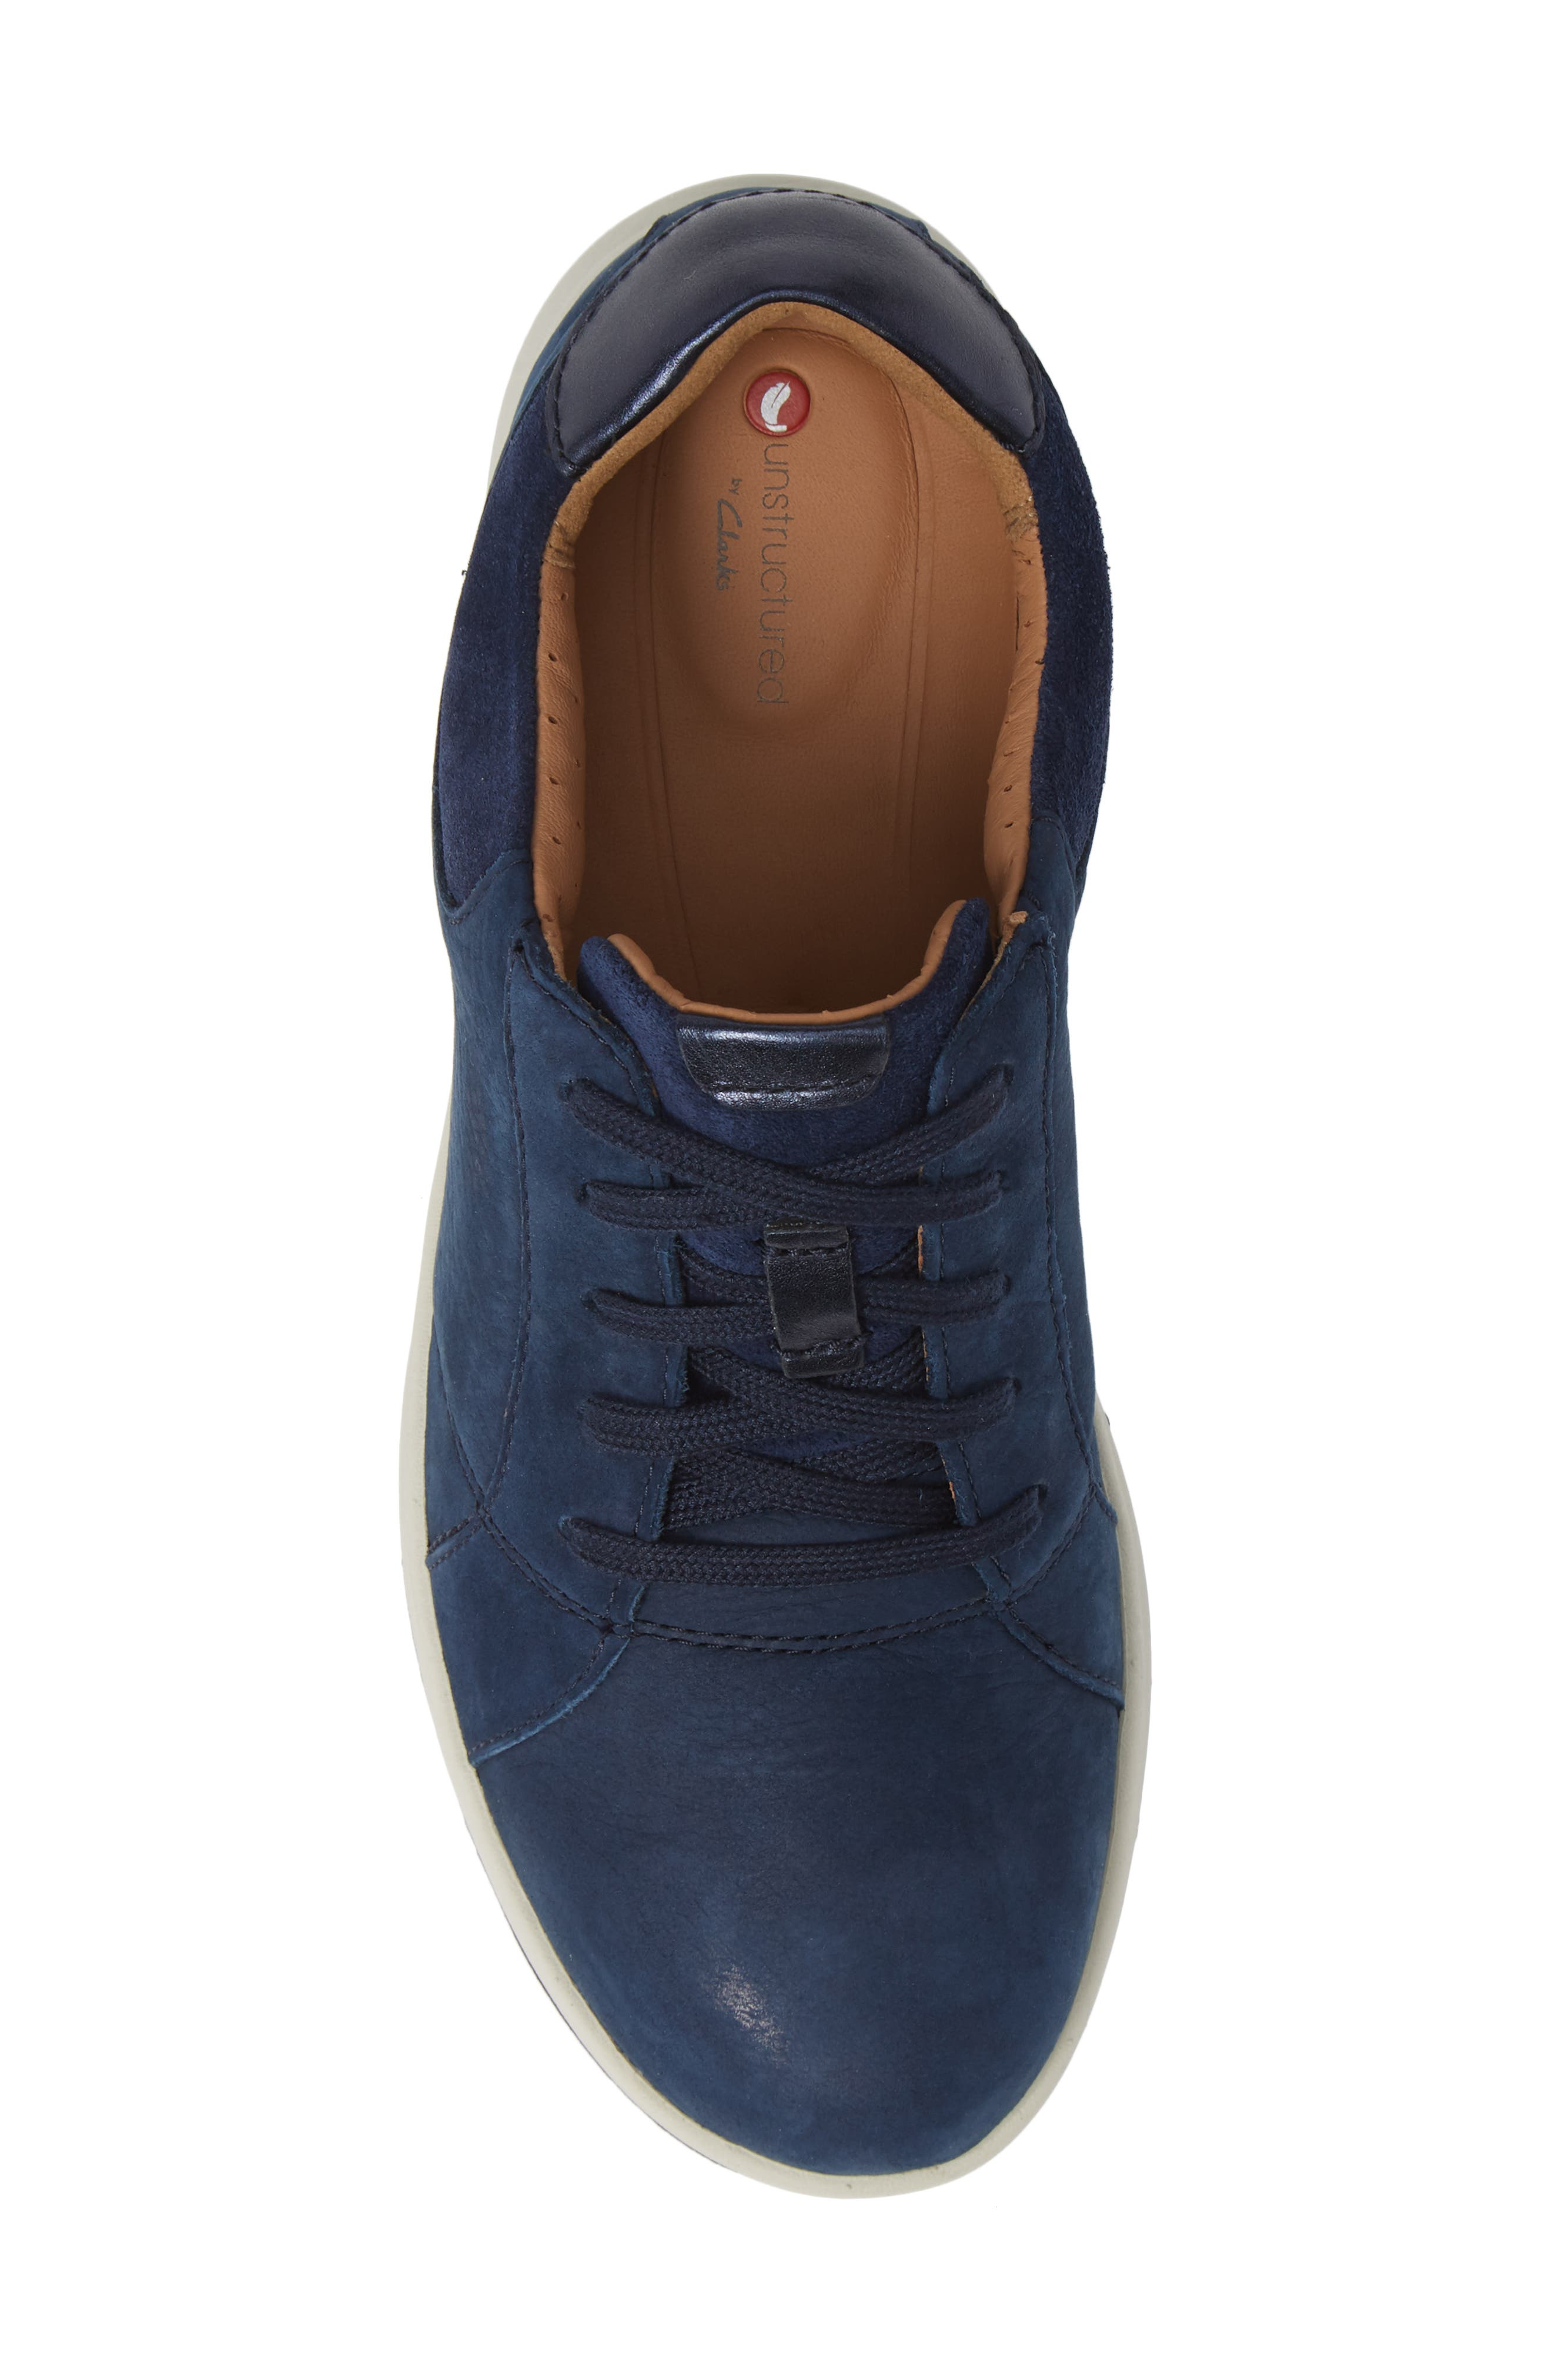 UnAdorn Lace-Up Sneaker,                             Alternate thumbnail 5, color,                             NAVY NUBUCK